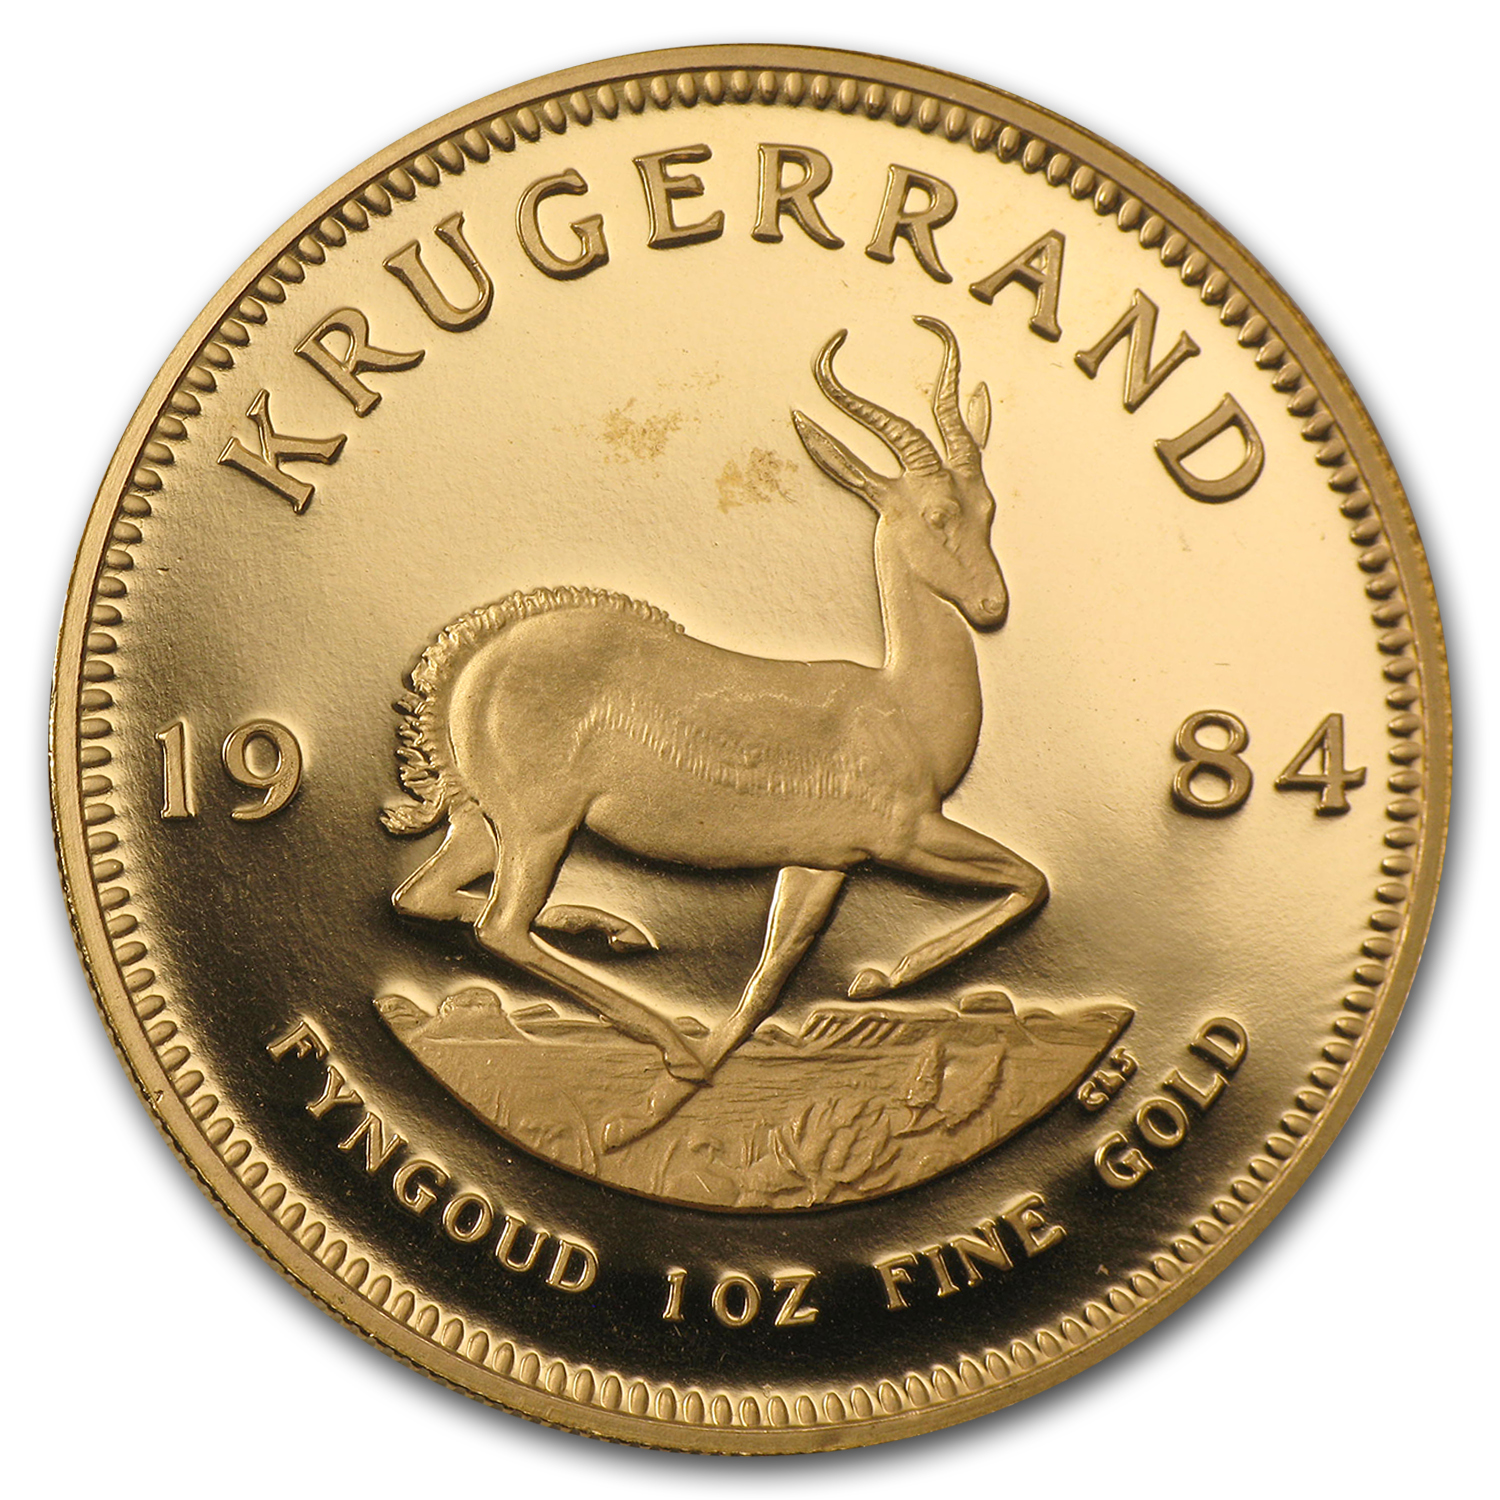 1984 1 oz Gold South African Krugerrand (Proof)